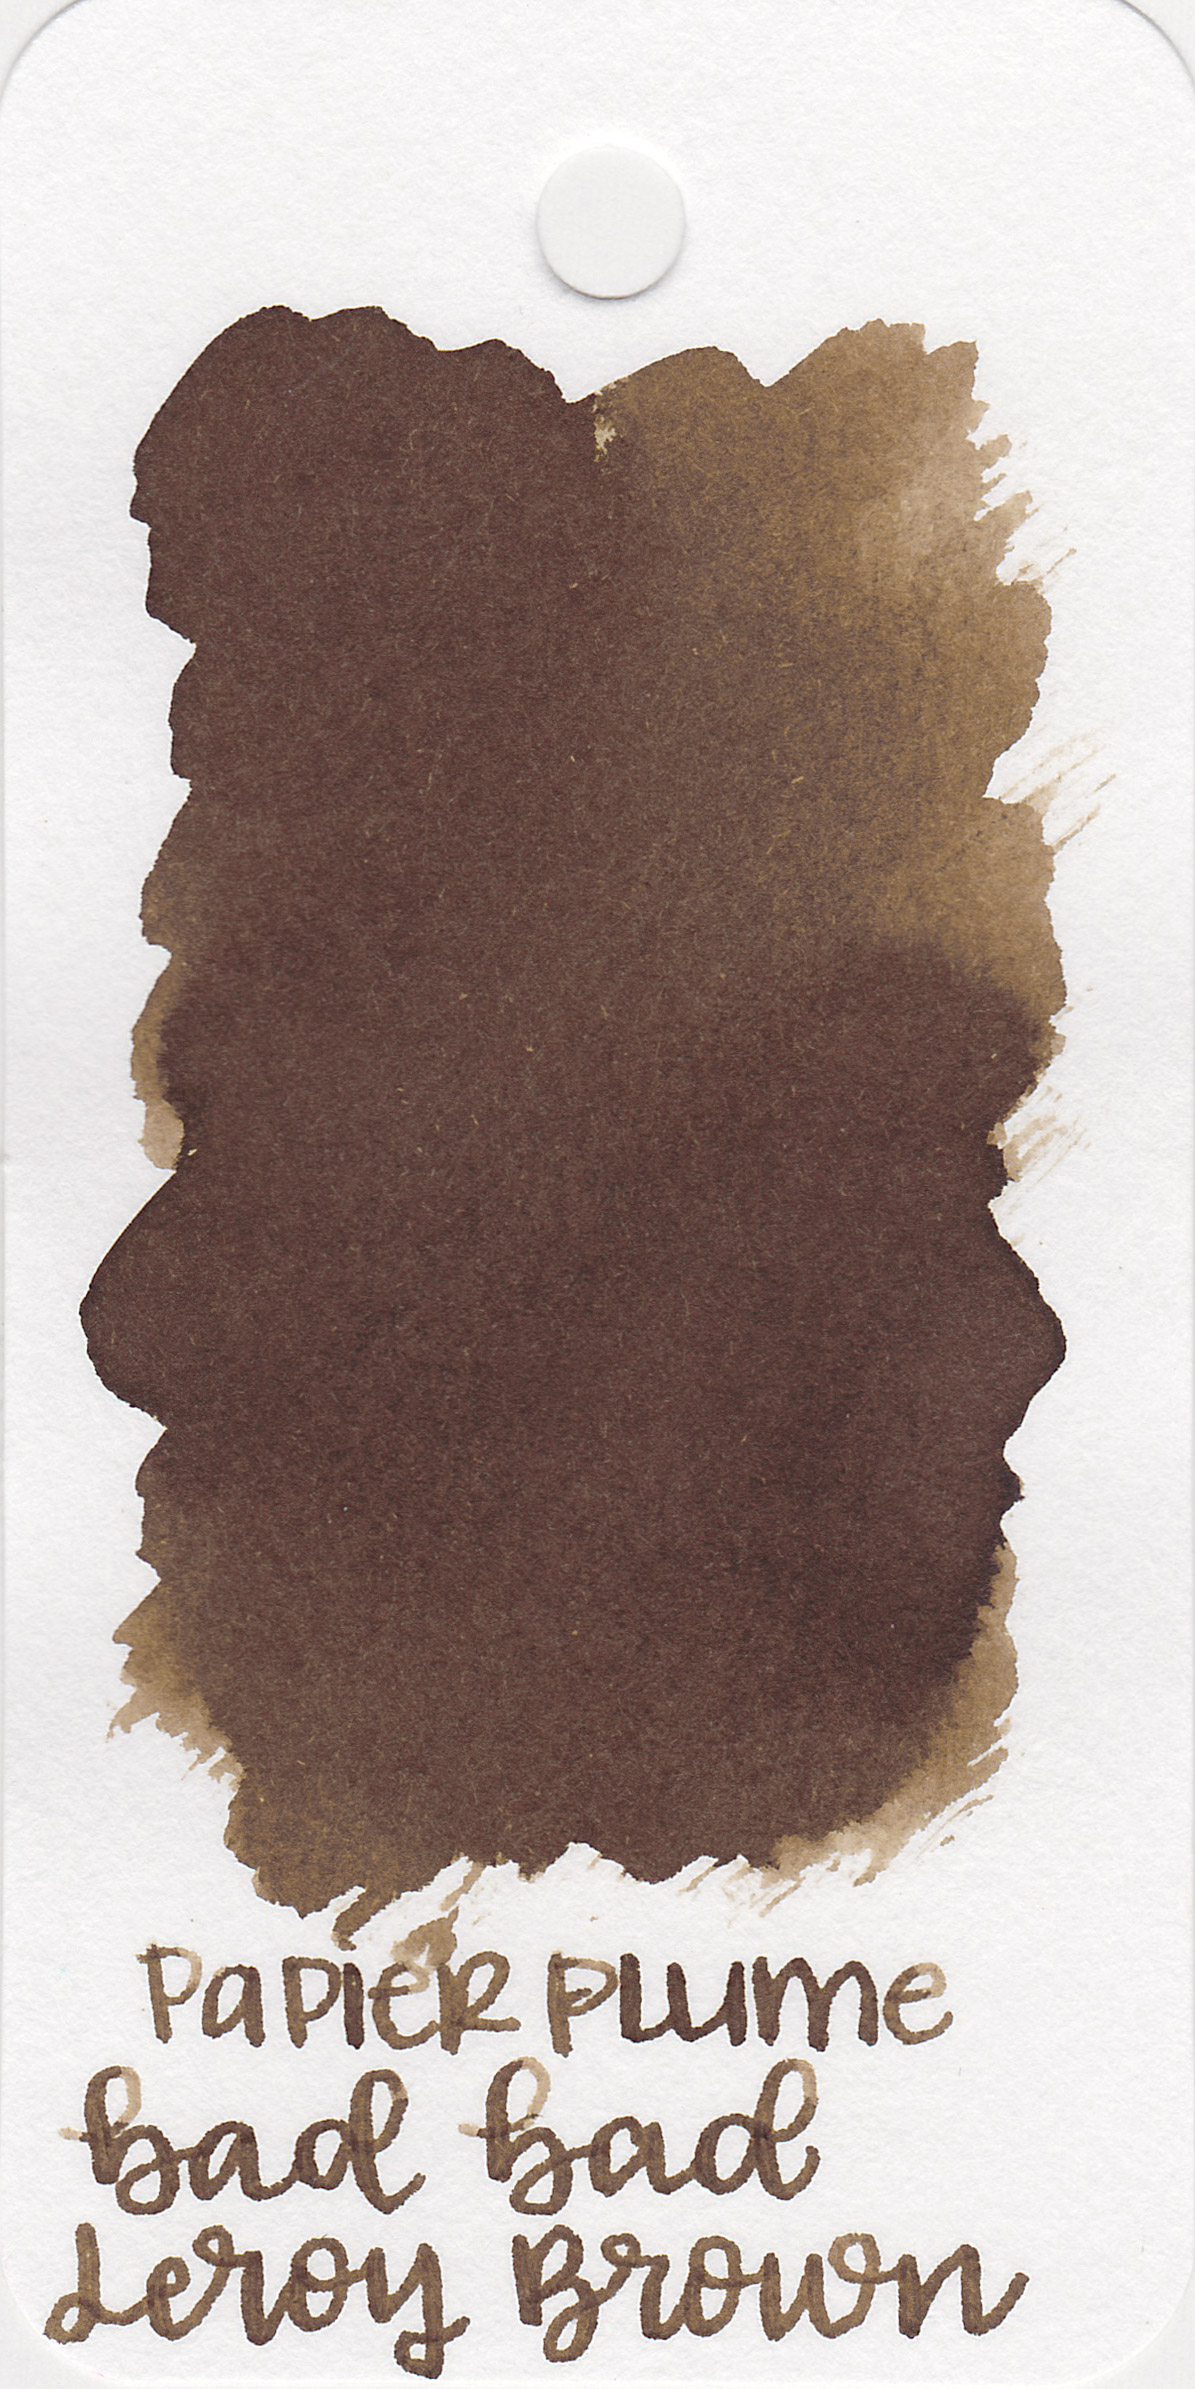 The color: - Leroy Brown is a medium, cool-tone brown. When wet it looks warmer, but cools in tone as it dries.